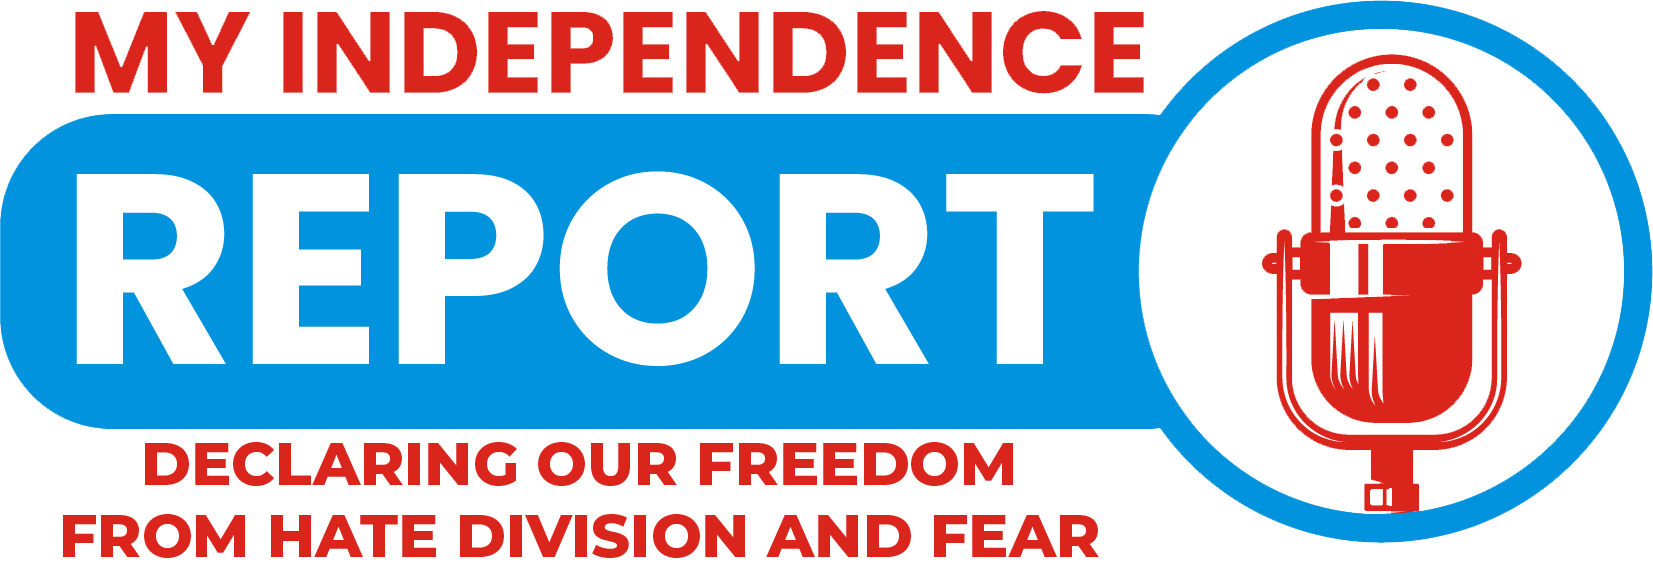 My independence